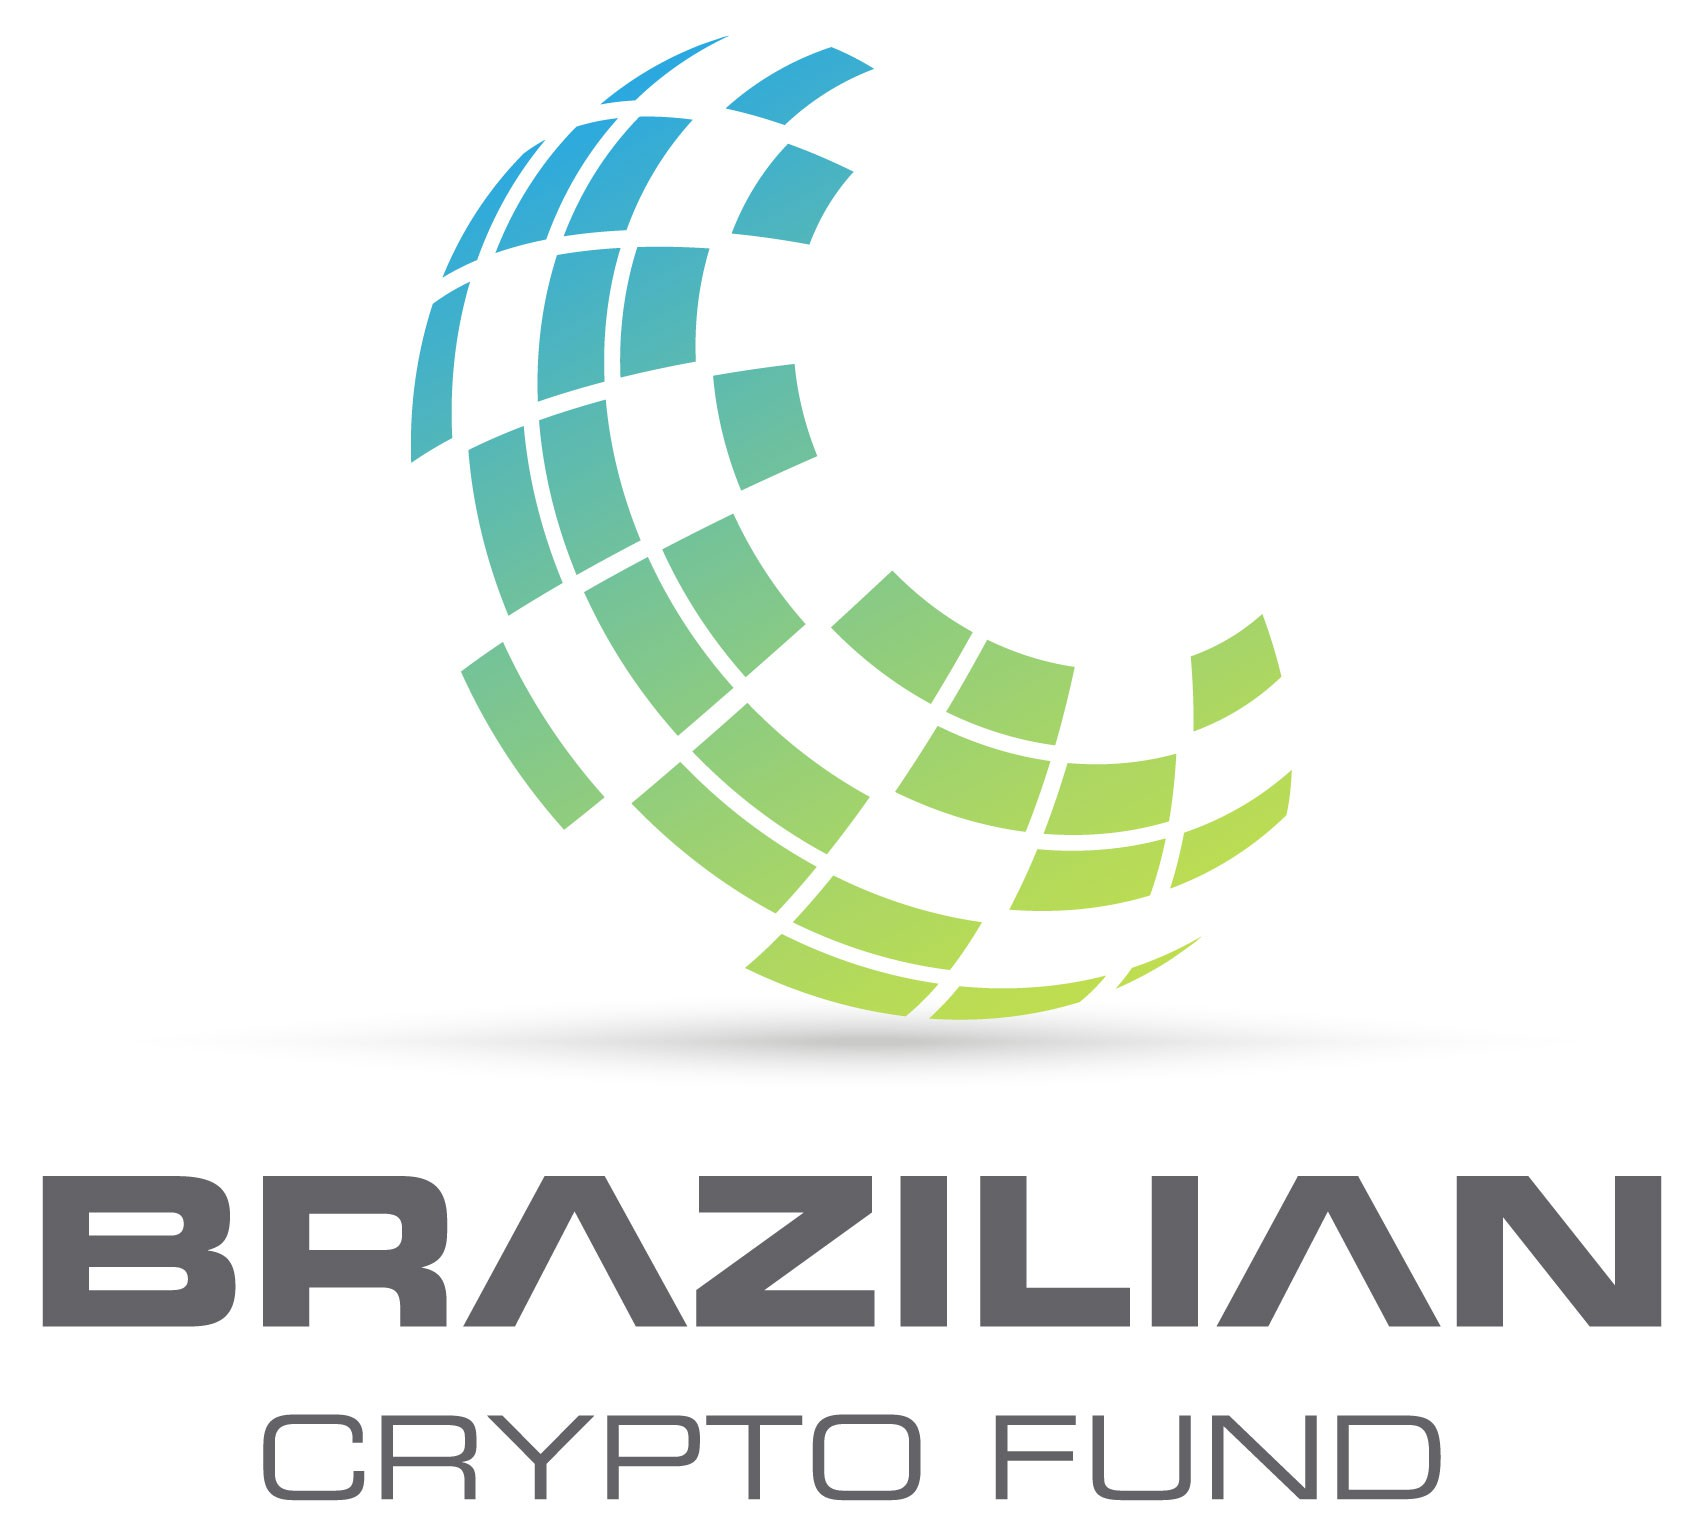 Wall street meets cryptocurrencies logo. Be part of the revolution.